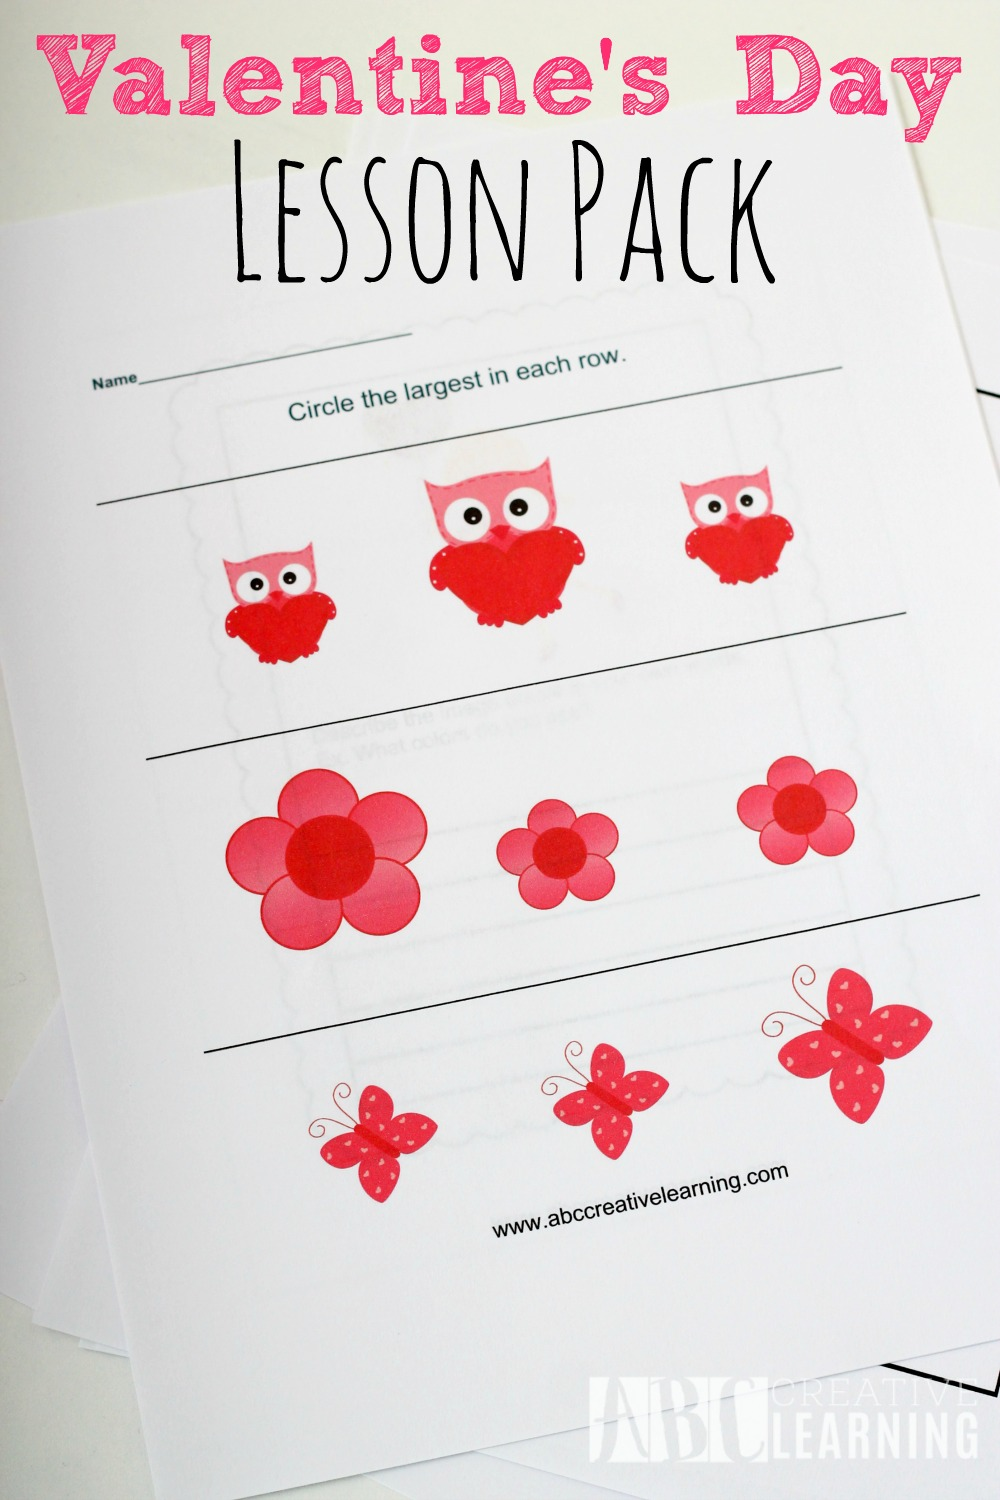 Valentine's Day Lesson Pack Sizing